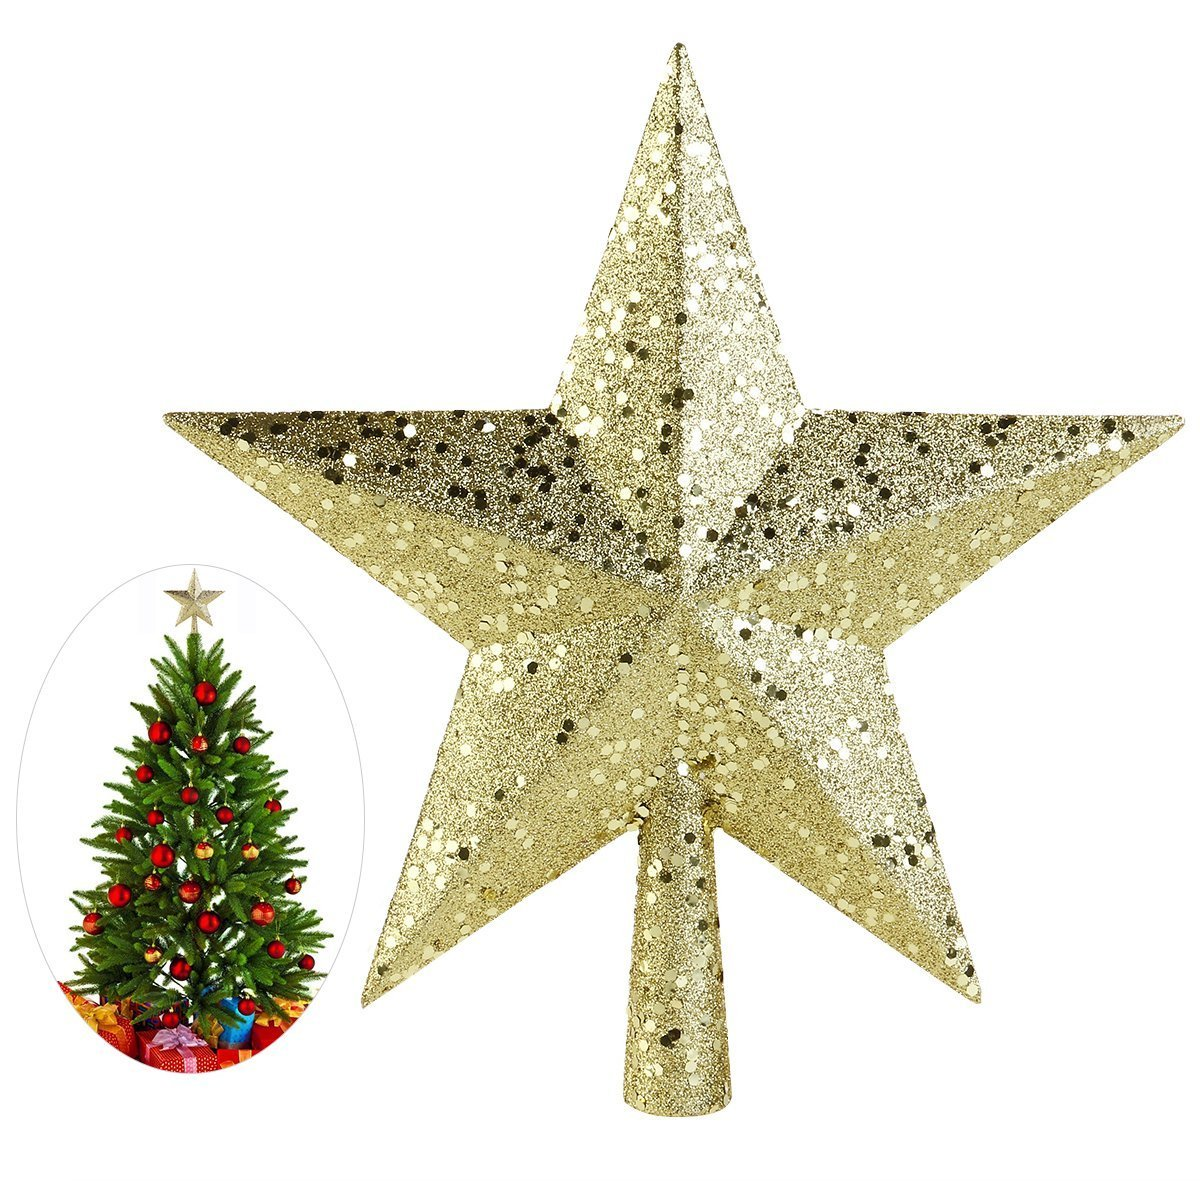 NICEXMAS Christmas Tree Toppers Star Treasures Glittered Decoration ...